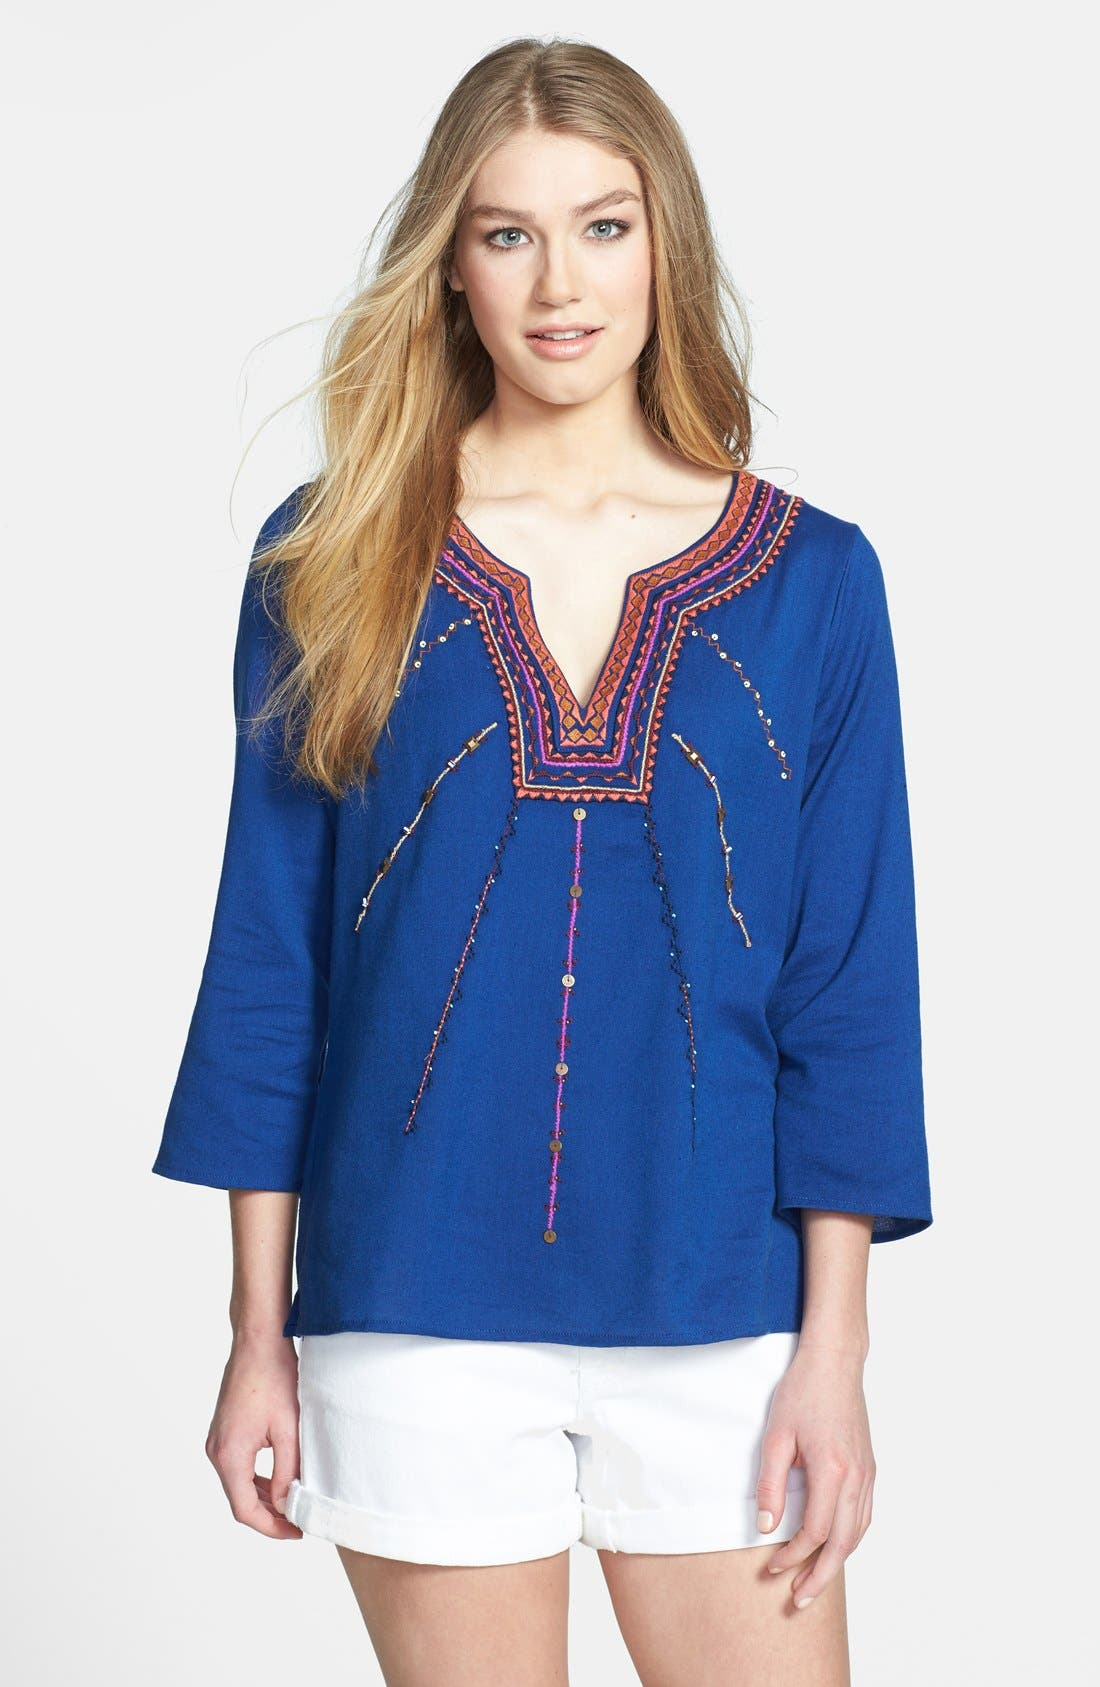 Alternate Image 1 Selected - Lucky Brand 'Sodalite' Embroidered Blouse